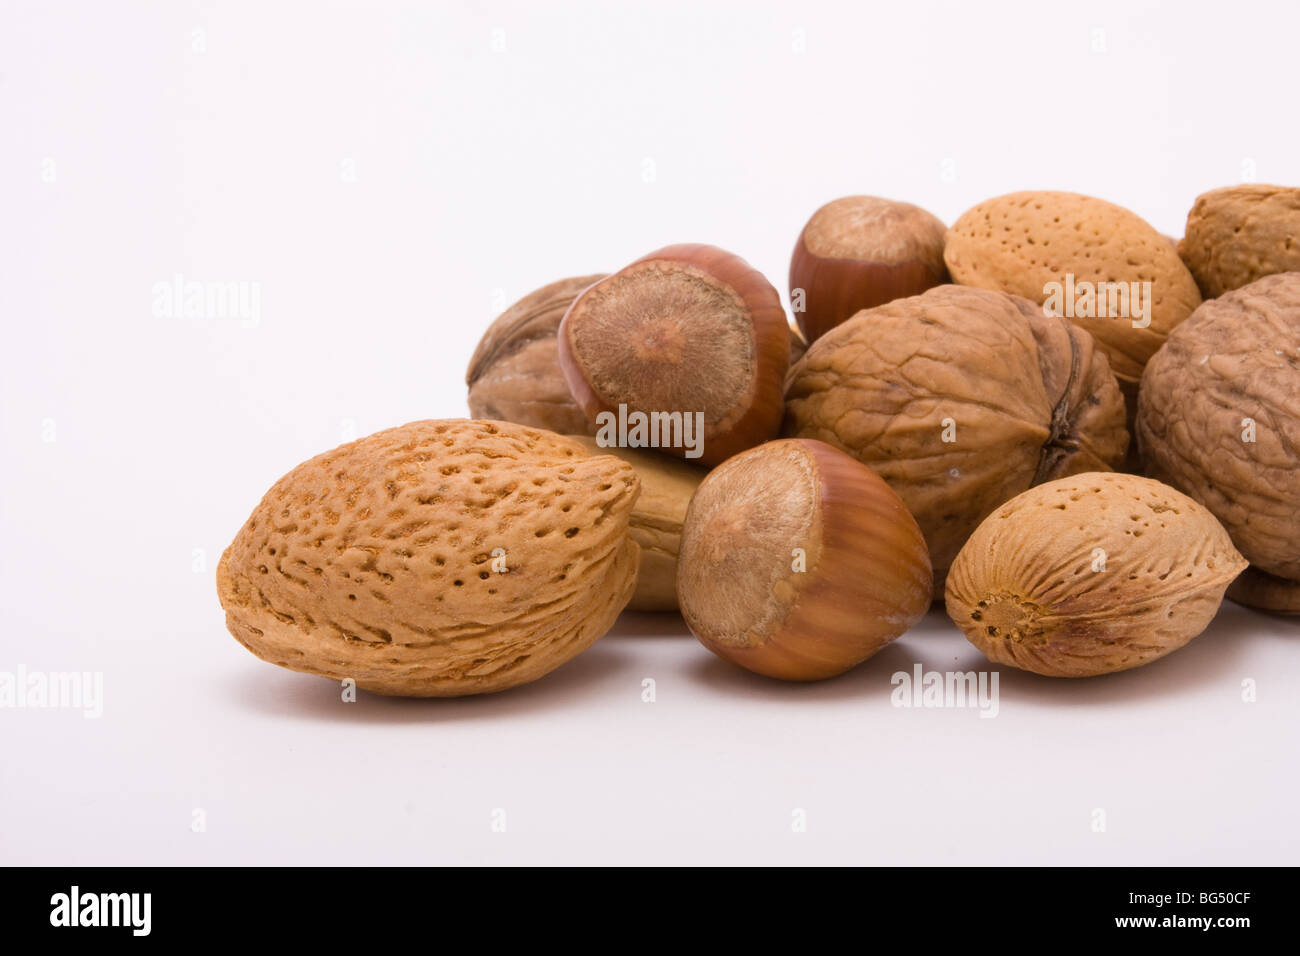 Festive Mixed Nuts of hazelnuts, walnuts and almonds isolated against white background. - Stock Image